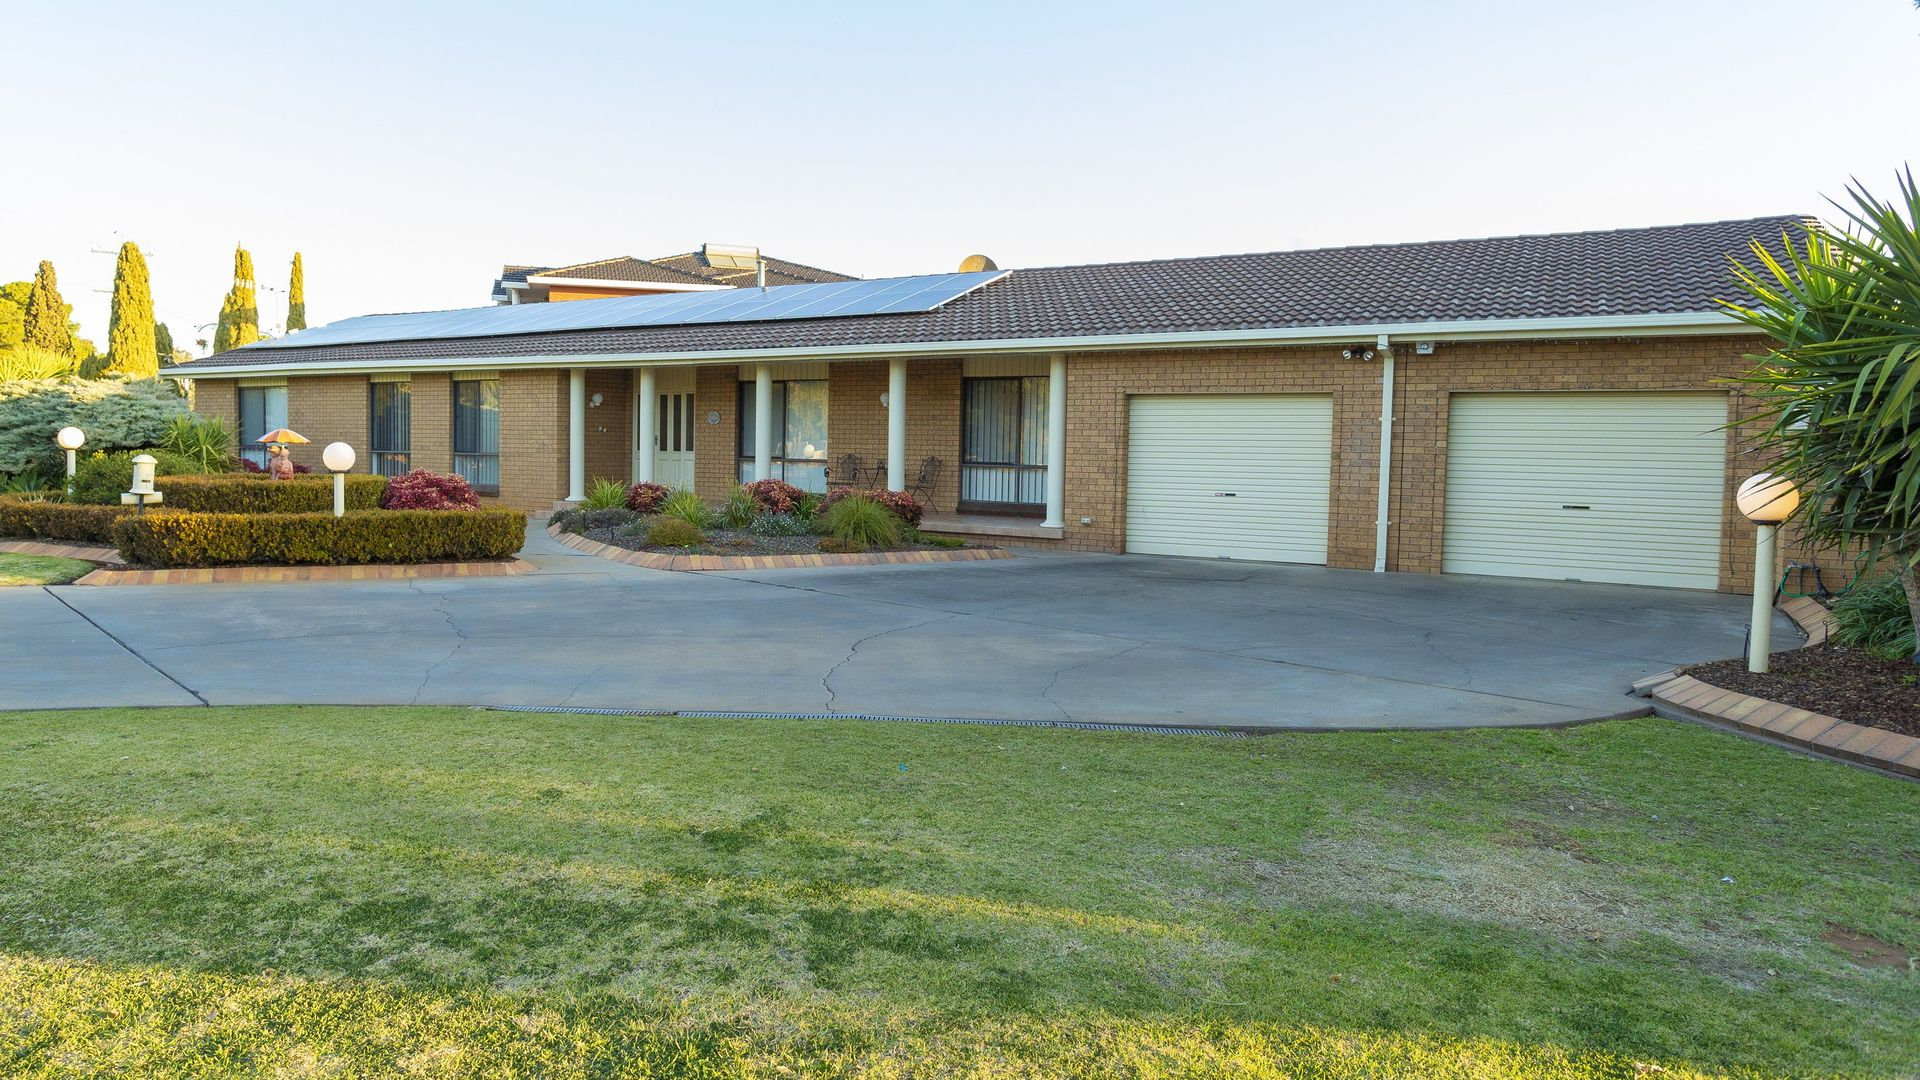 2 DAY STREET, Griffith NSW 2680, Image 1